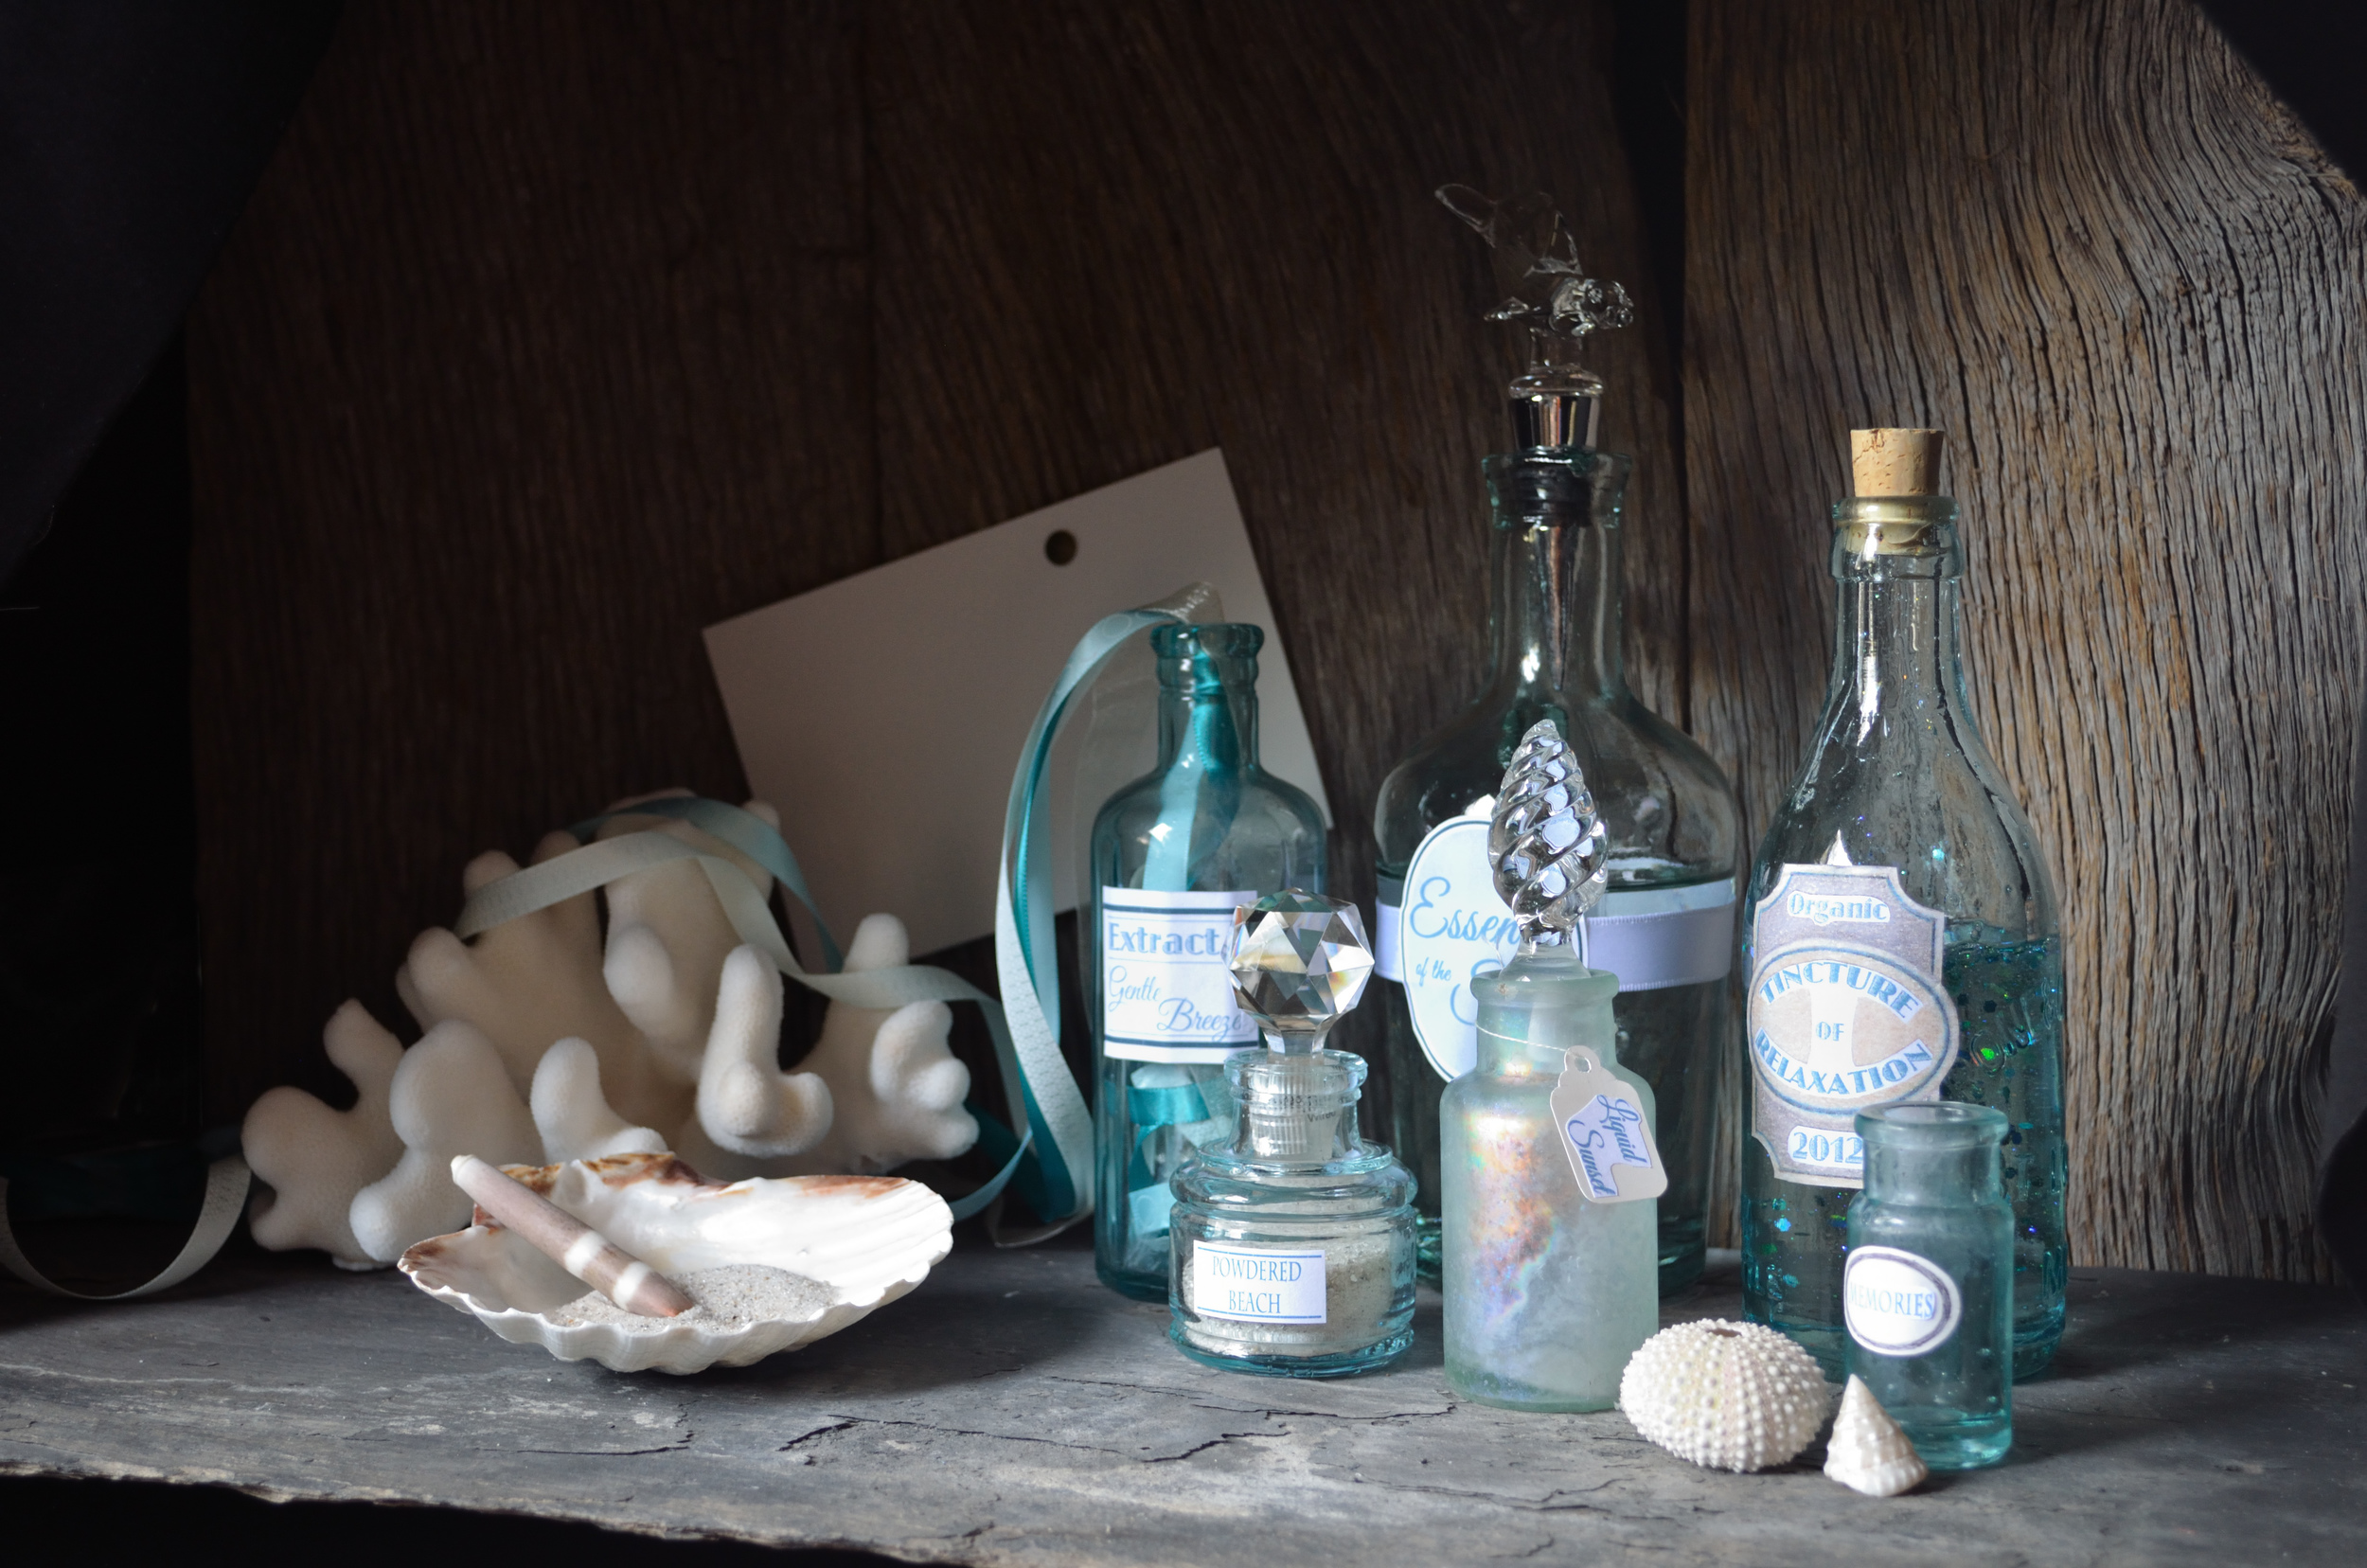 I felt that the story could be best told if I added labels to the bottles to imply their contents. I also changed the size of the recipe card as I felt it was too large for the composition. Although they were relevant to creating a recipe, visually I found the metal measuring spoons to be visually distracting and so I removed them and added coral.